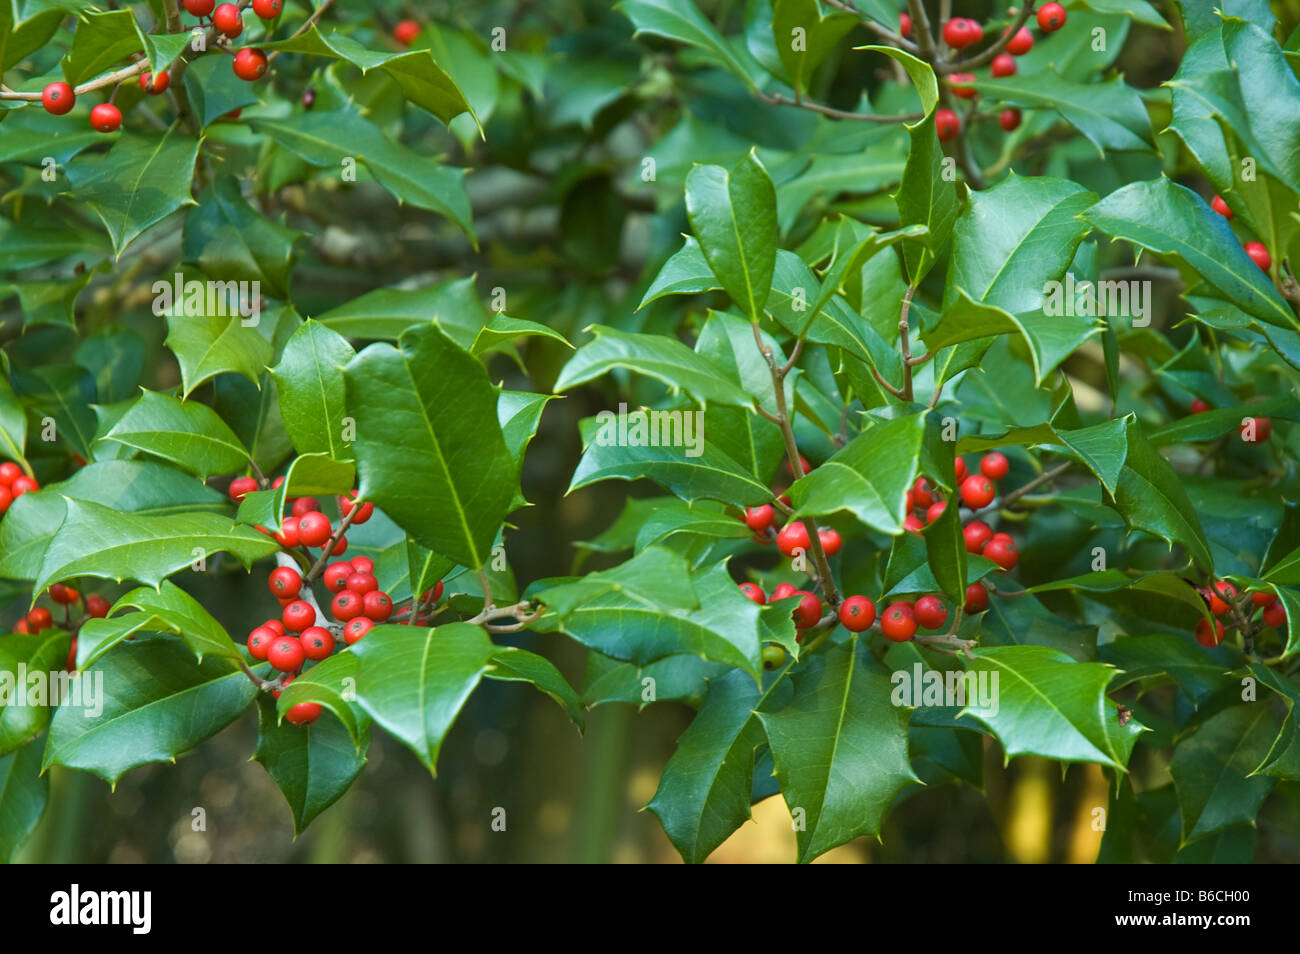 Christmas Green Holly Leaves And Red Berries On Holly Tree